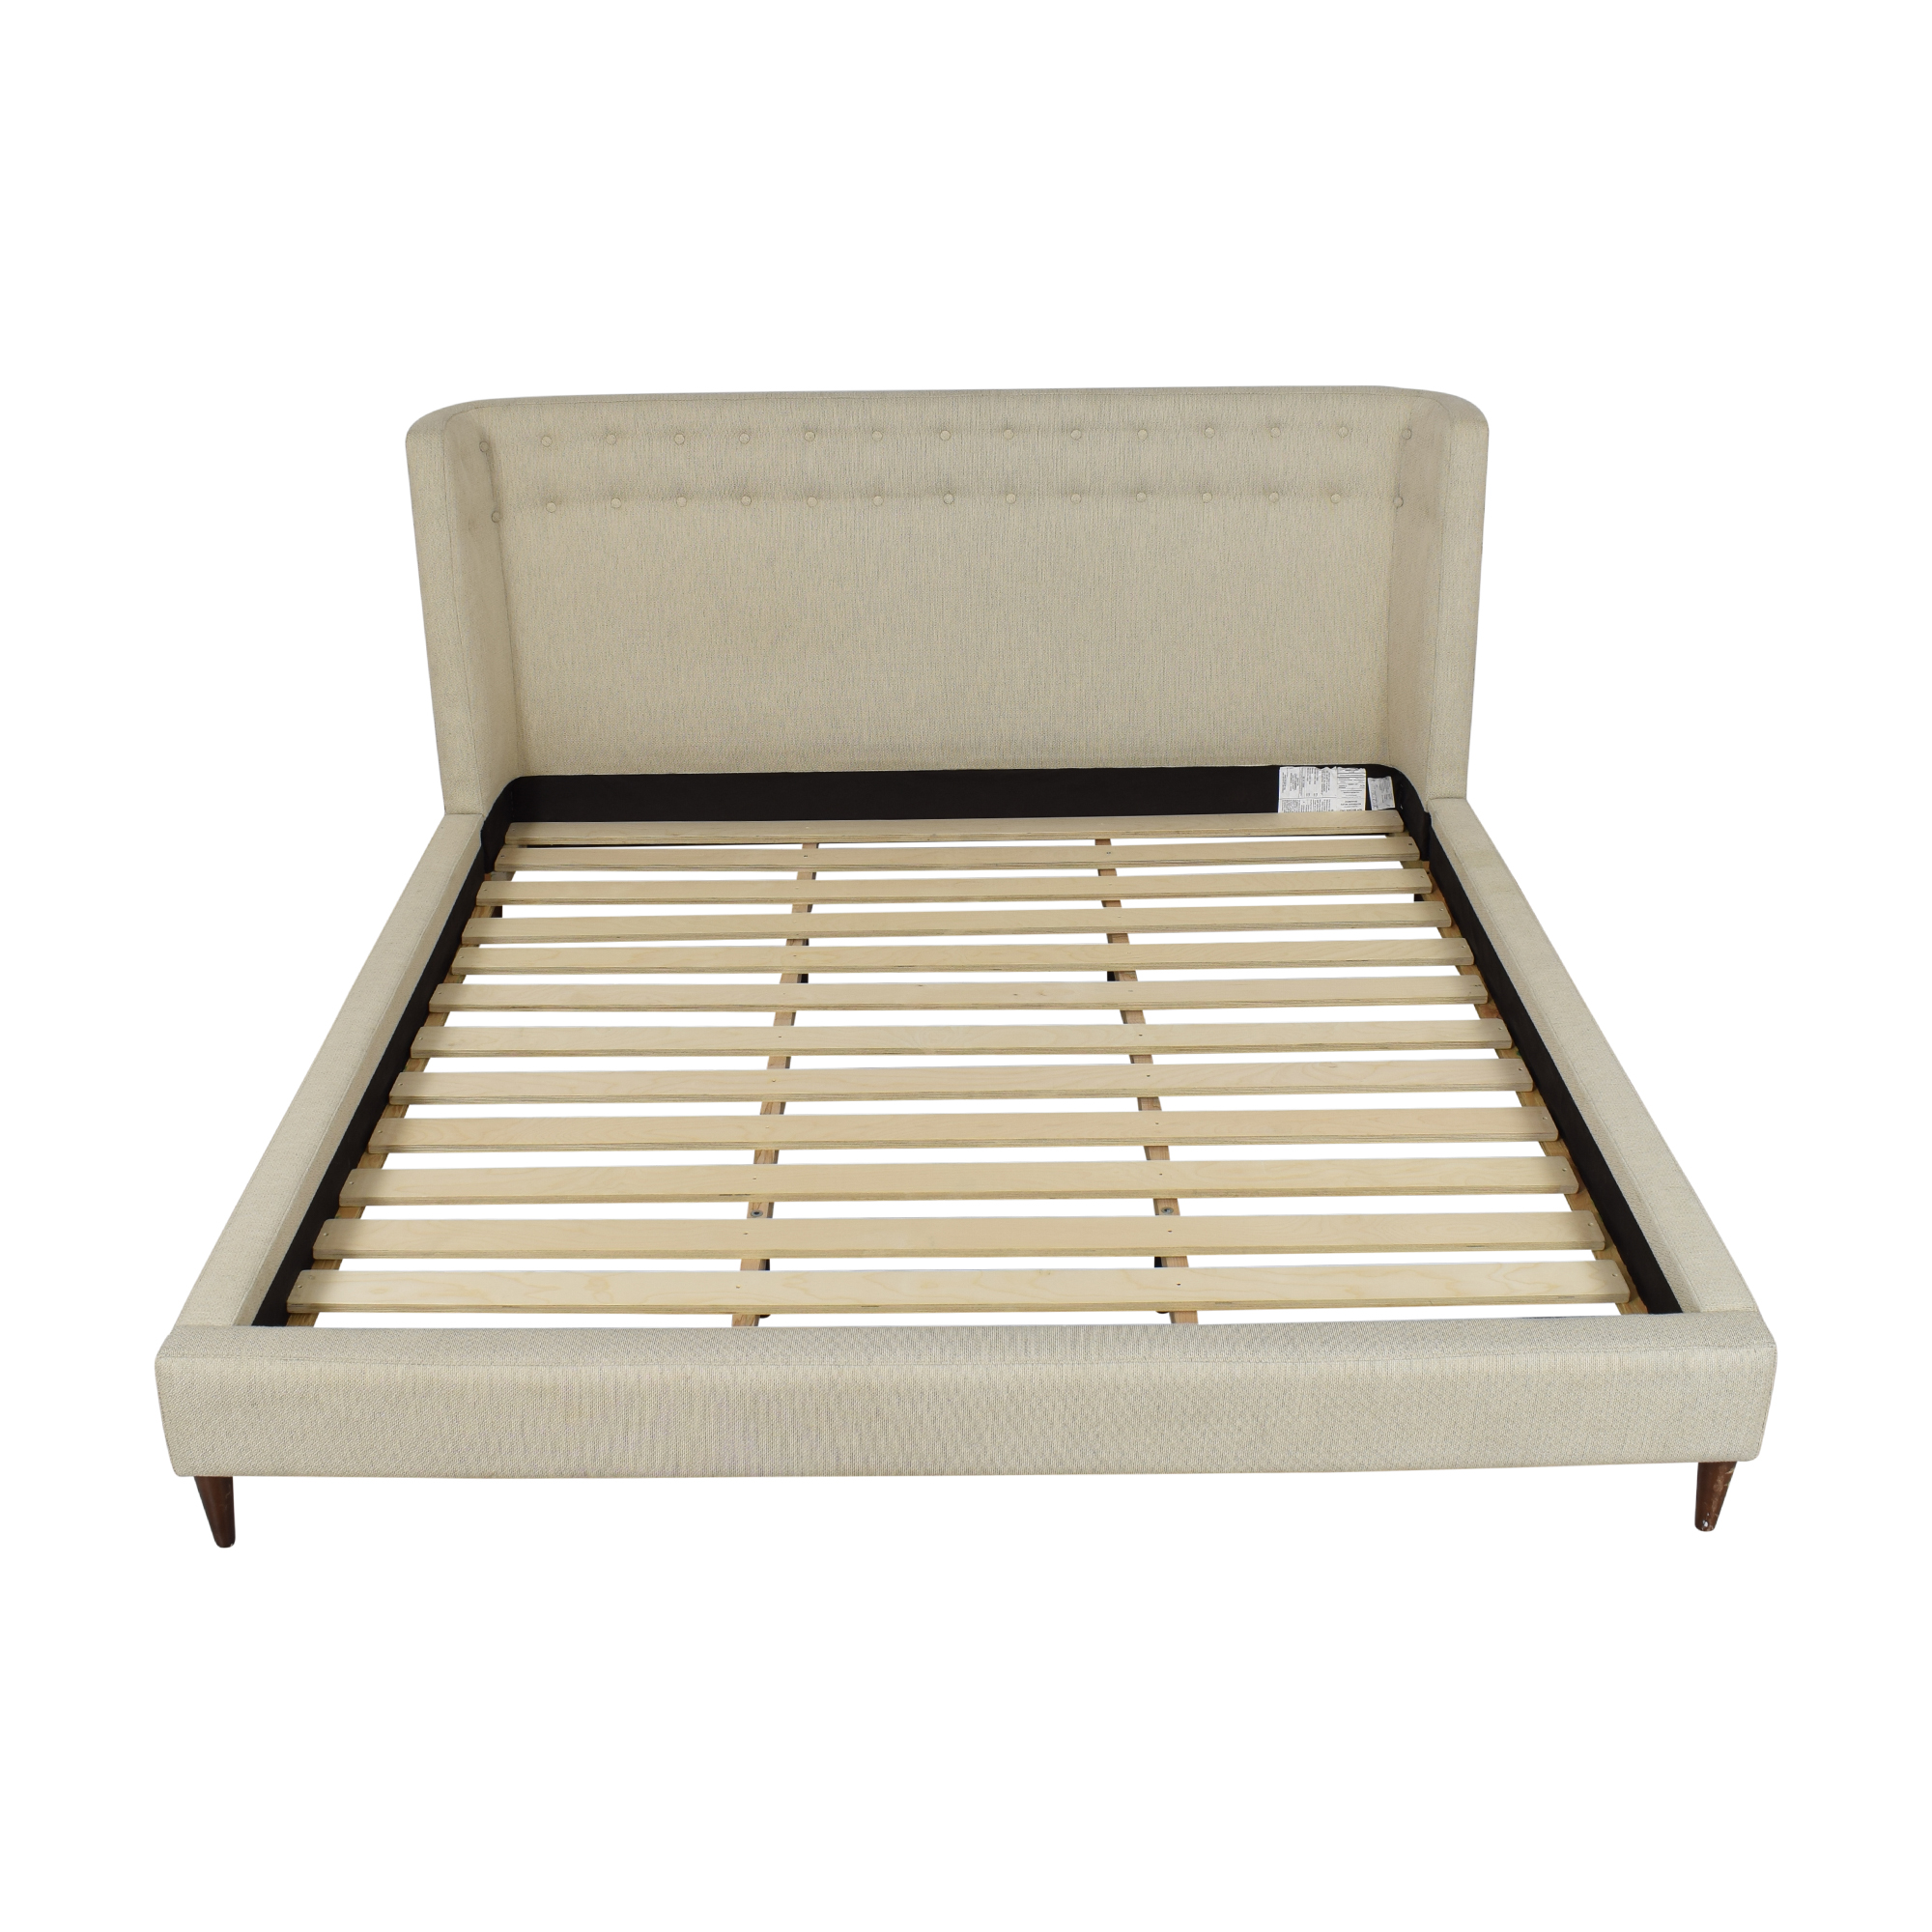 Crate & Barrel Crate & Barrel Gia Upholstered King Bed ct